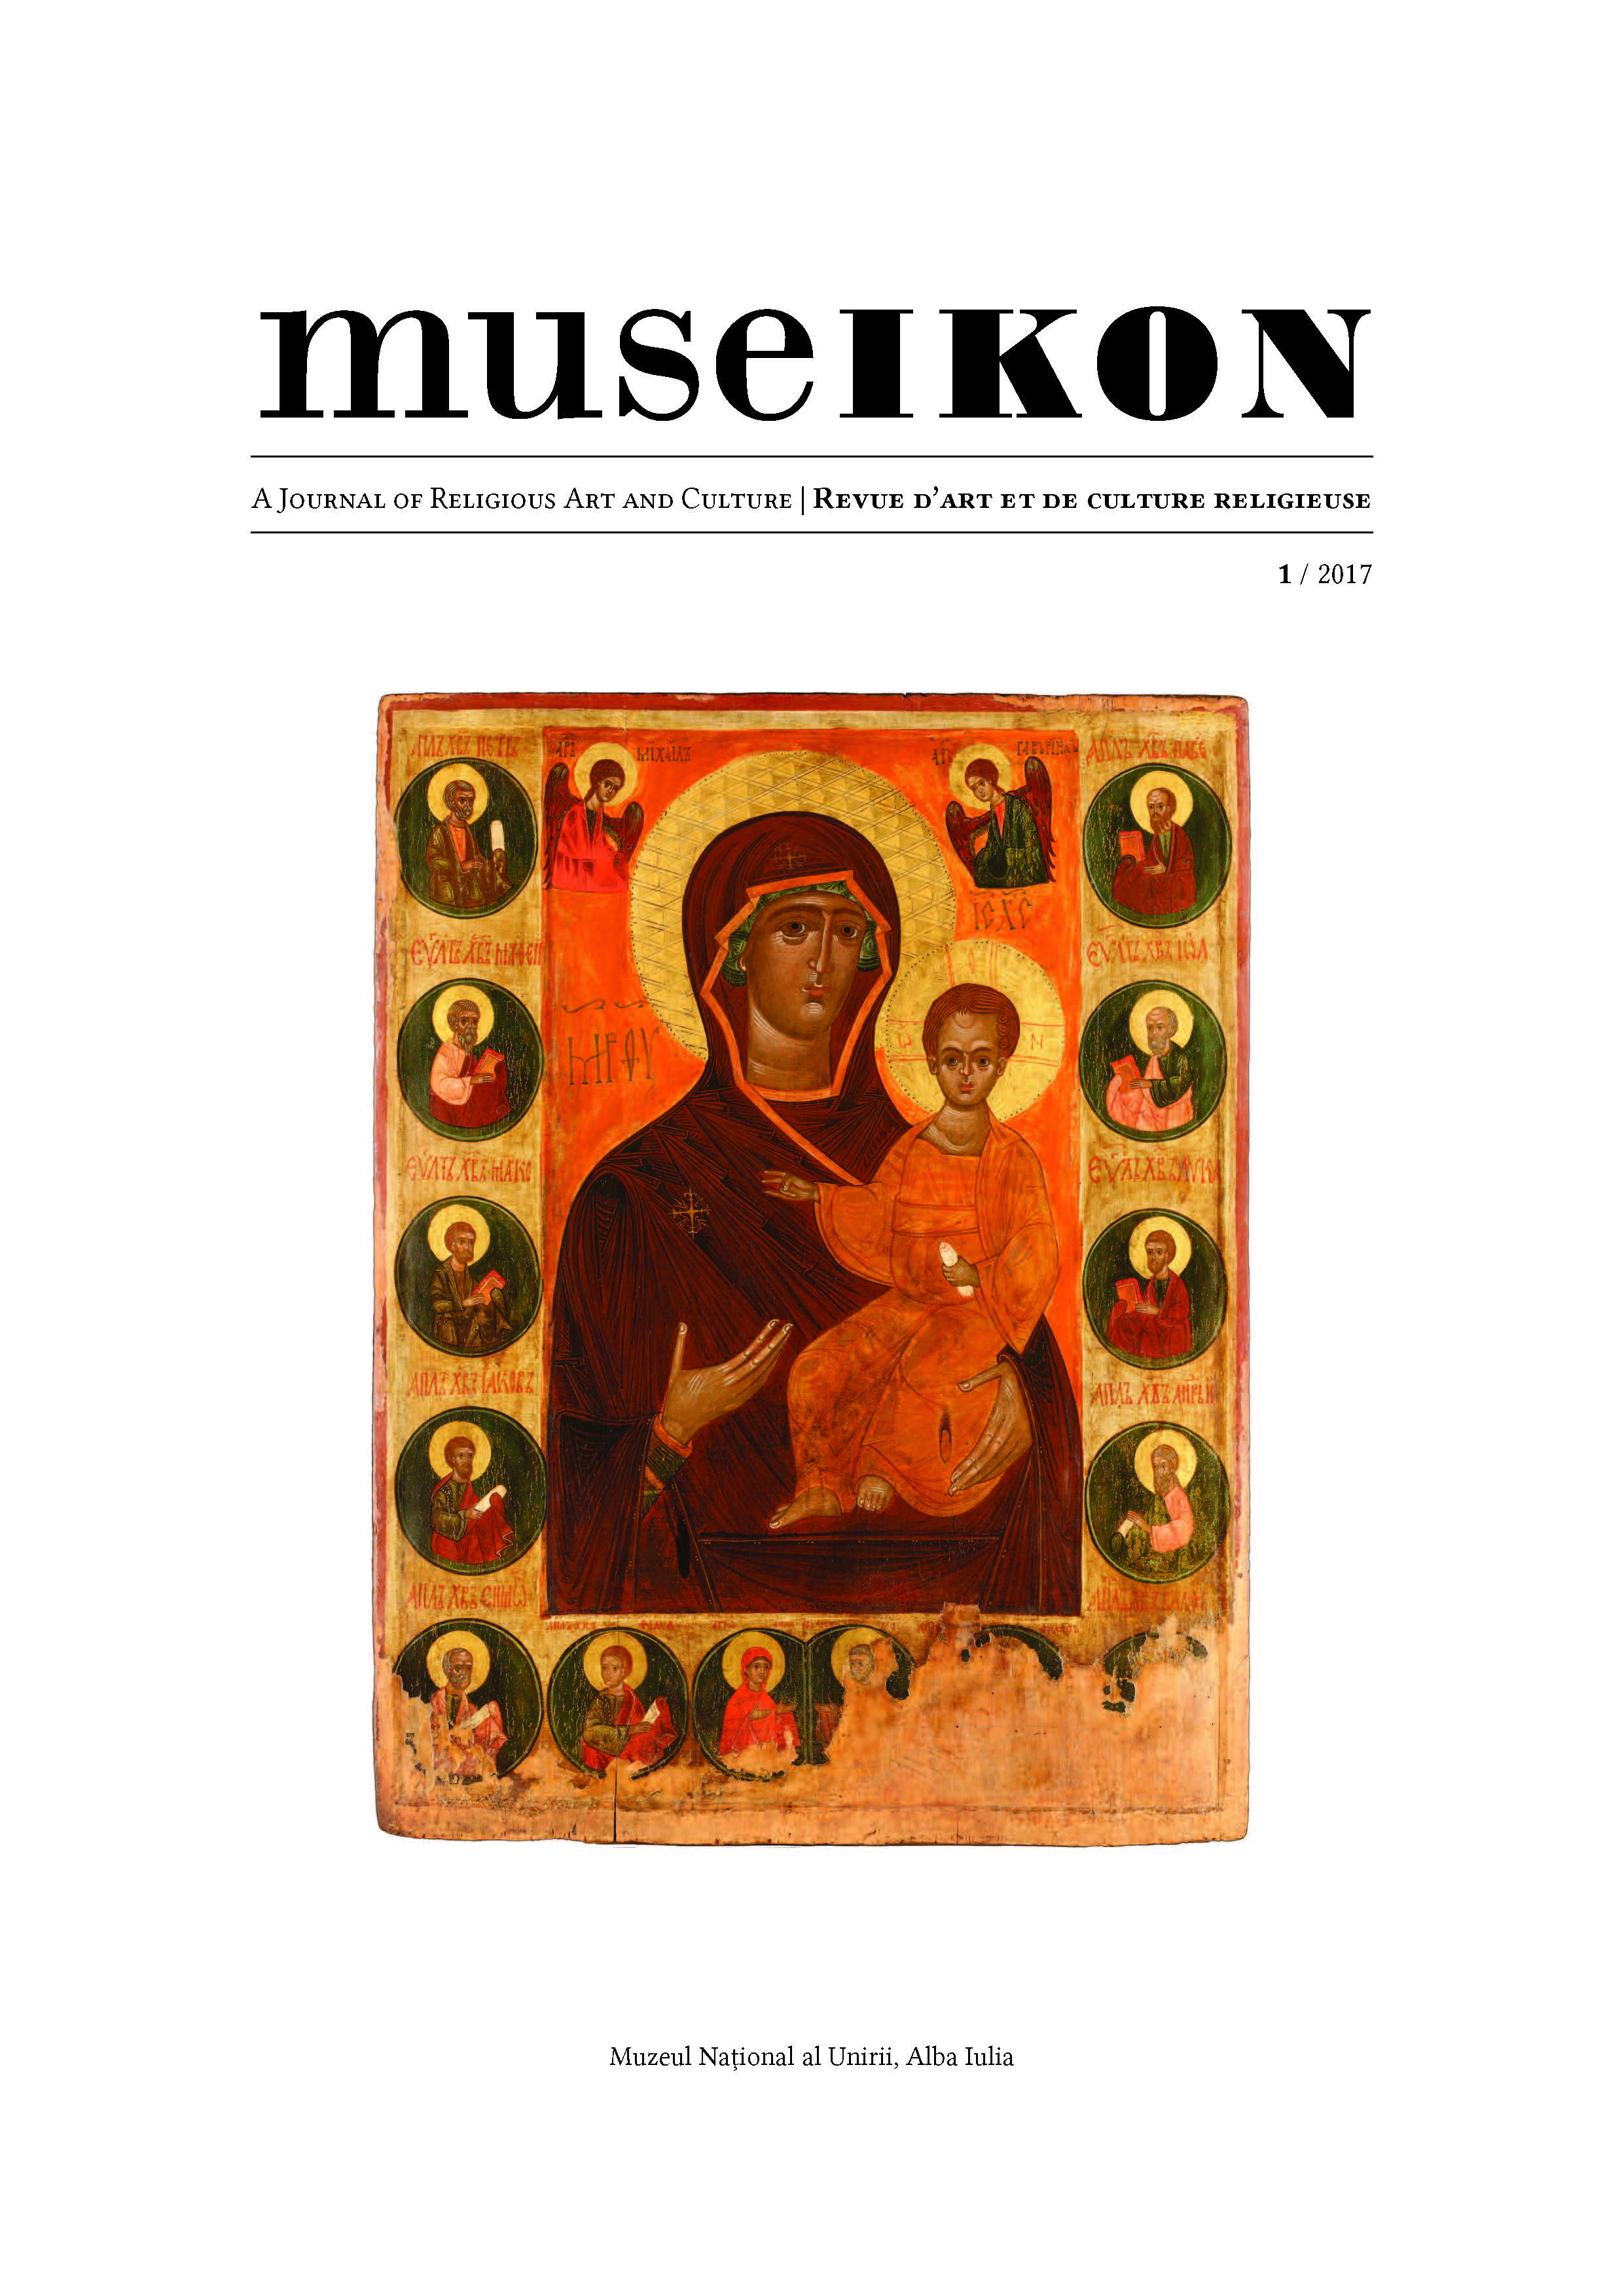 Museikon. A Journal of Religious Art and Culture / Revue d'art et de culture religieuse